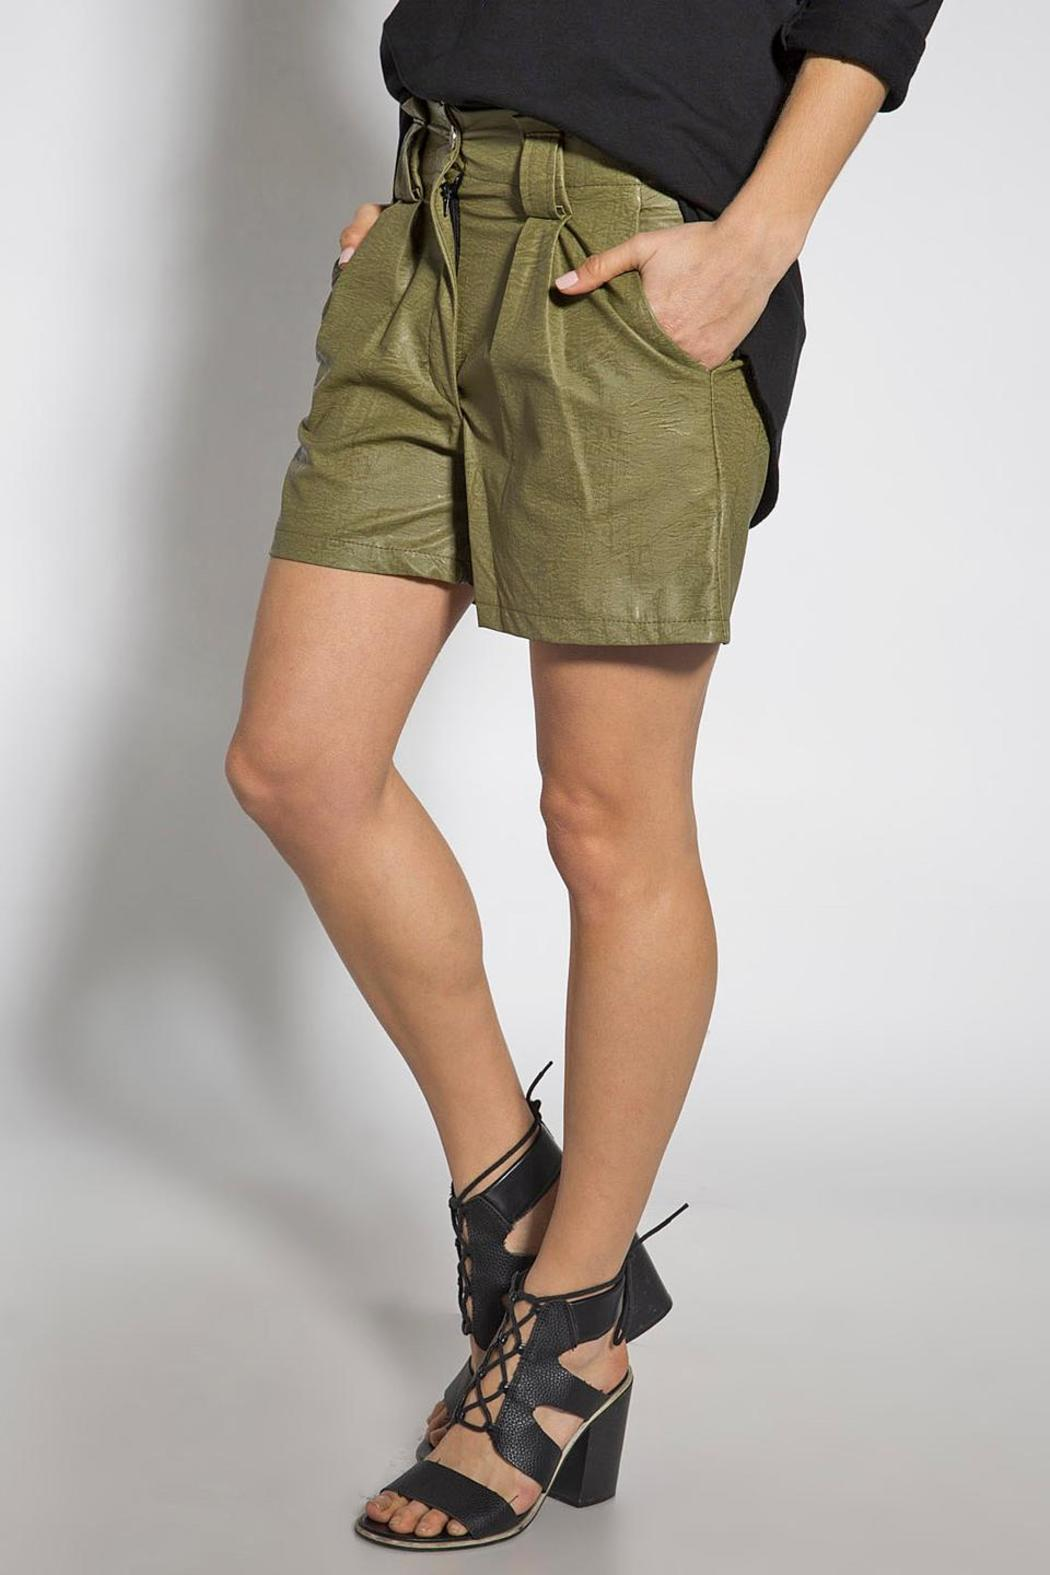 b774a32c9450be B mine Faux Leather Short from Tel Aviv by Bmine — Shoptiques